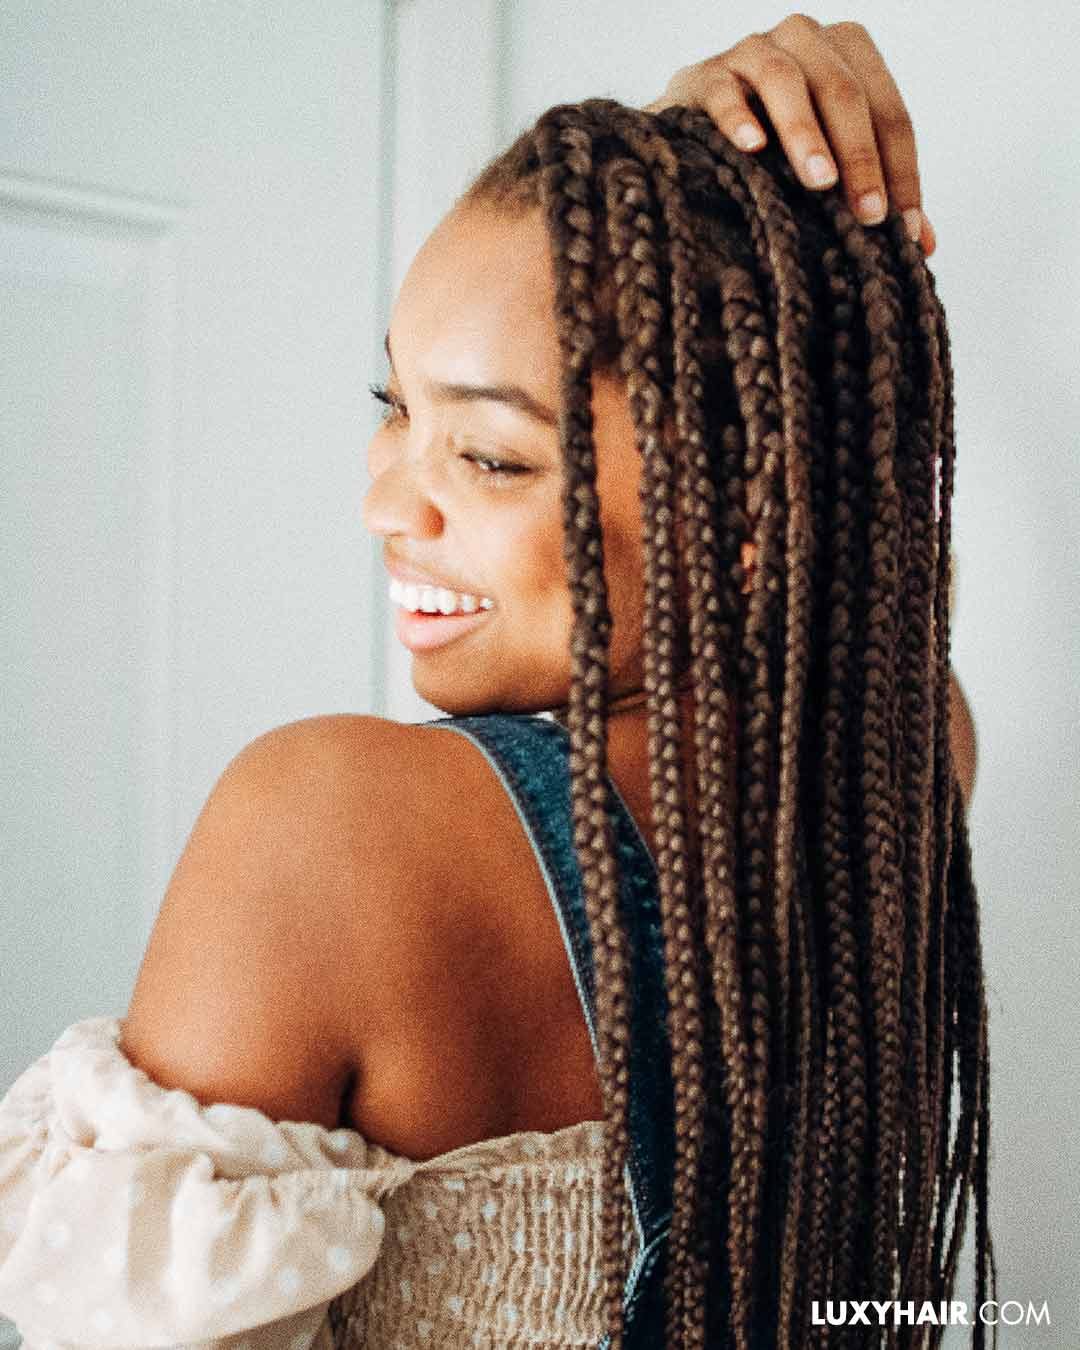 How to do box braids at home: a step by step guide